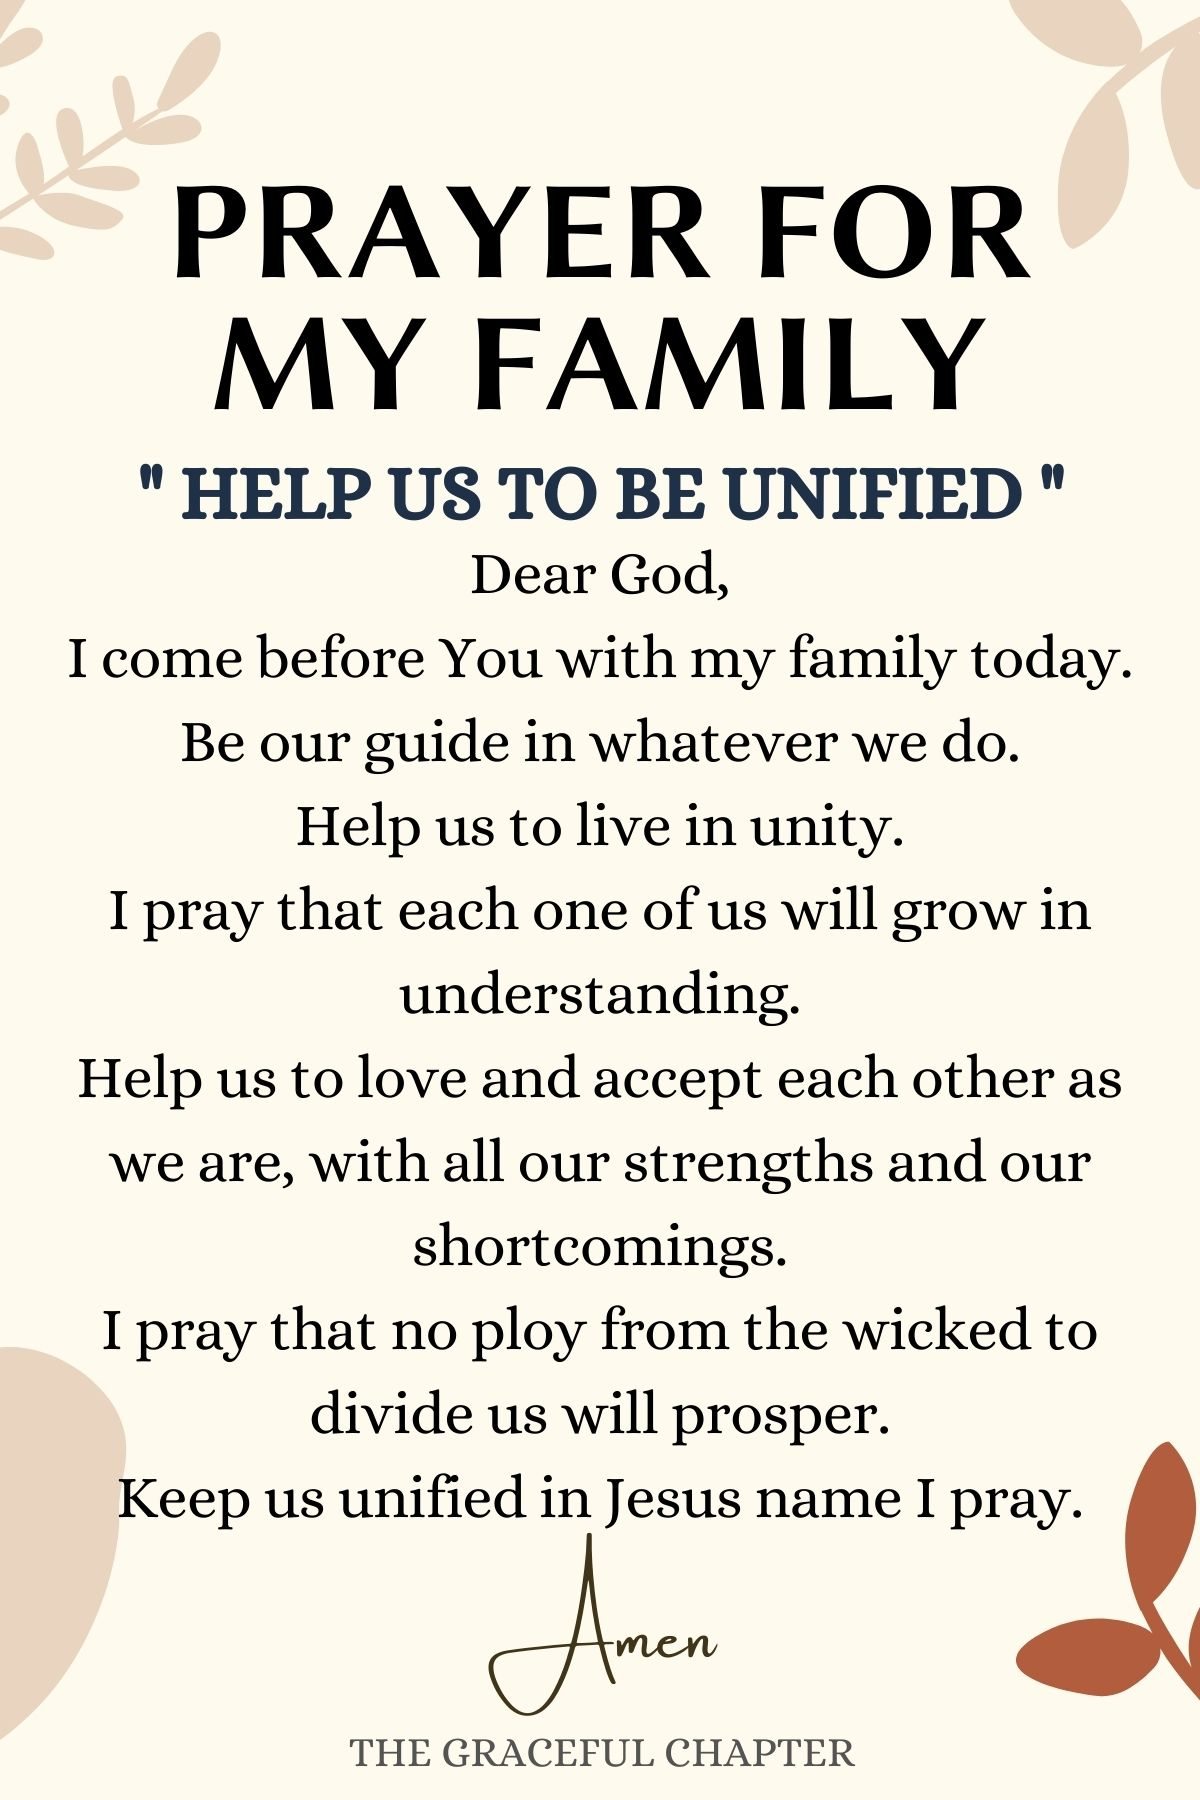 Help Us Be Unified